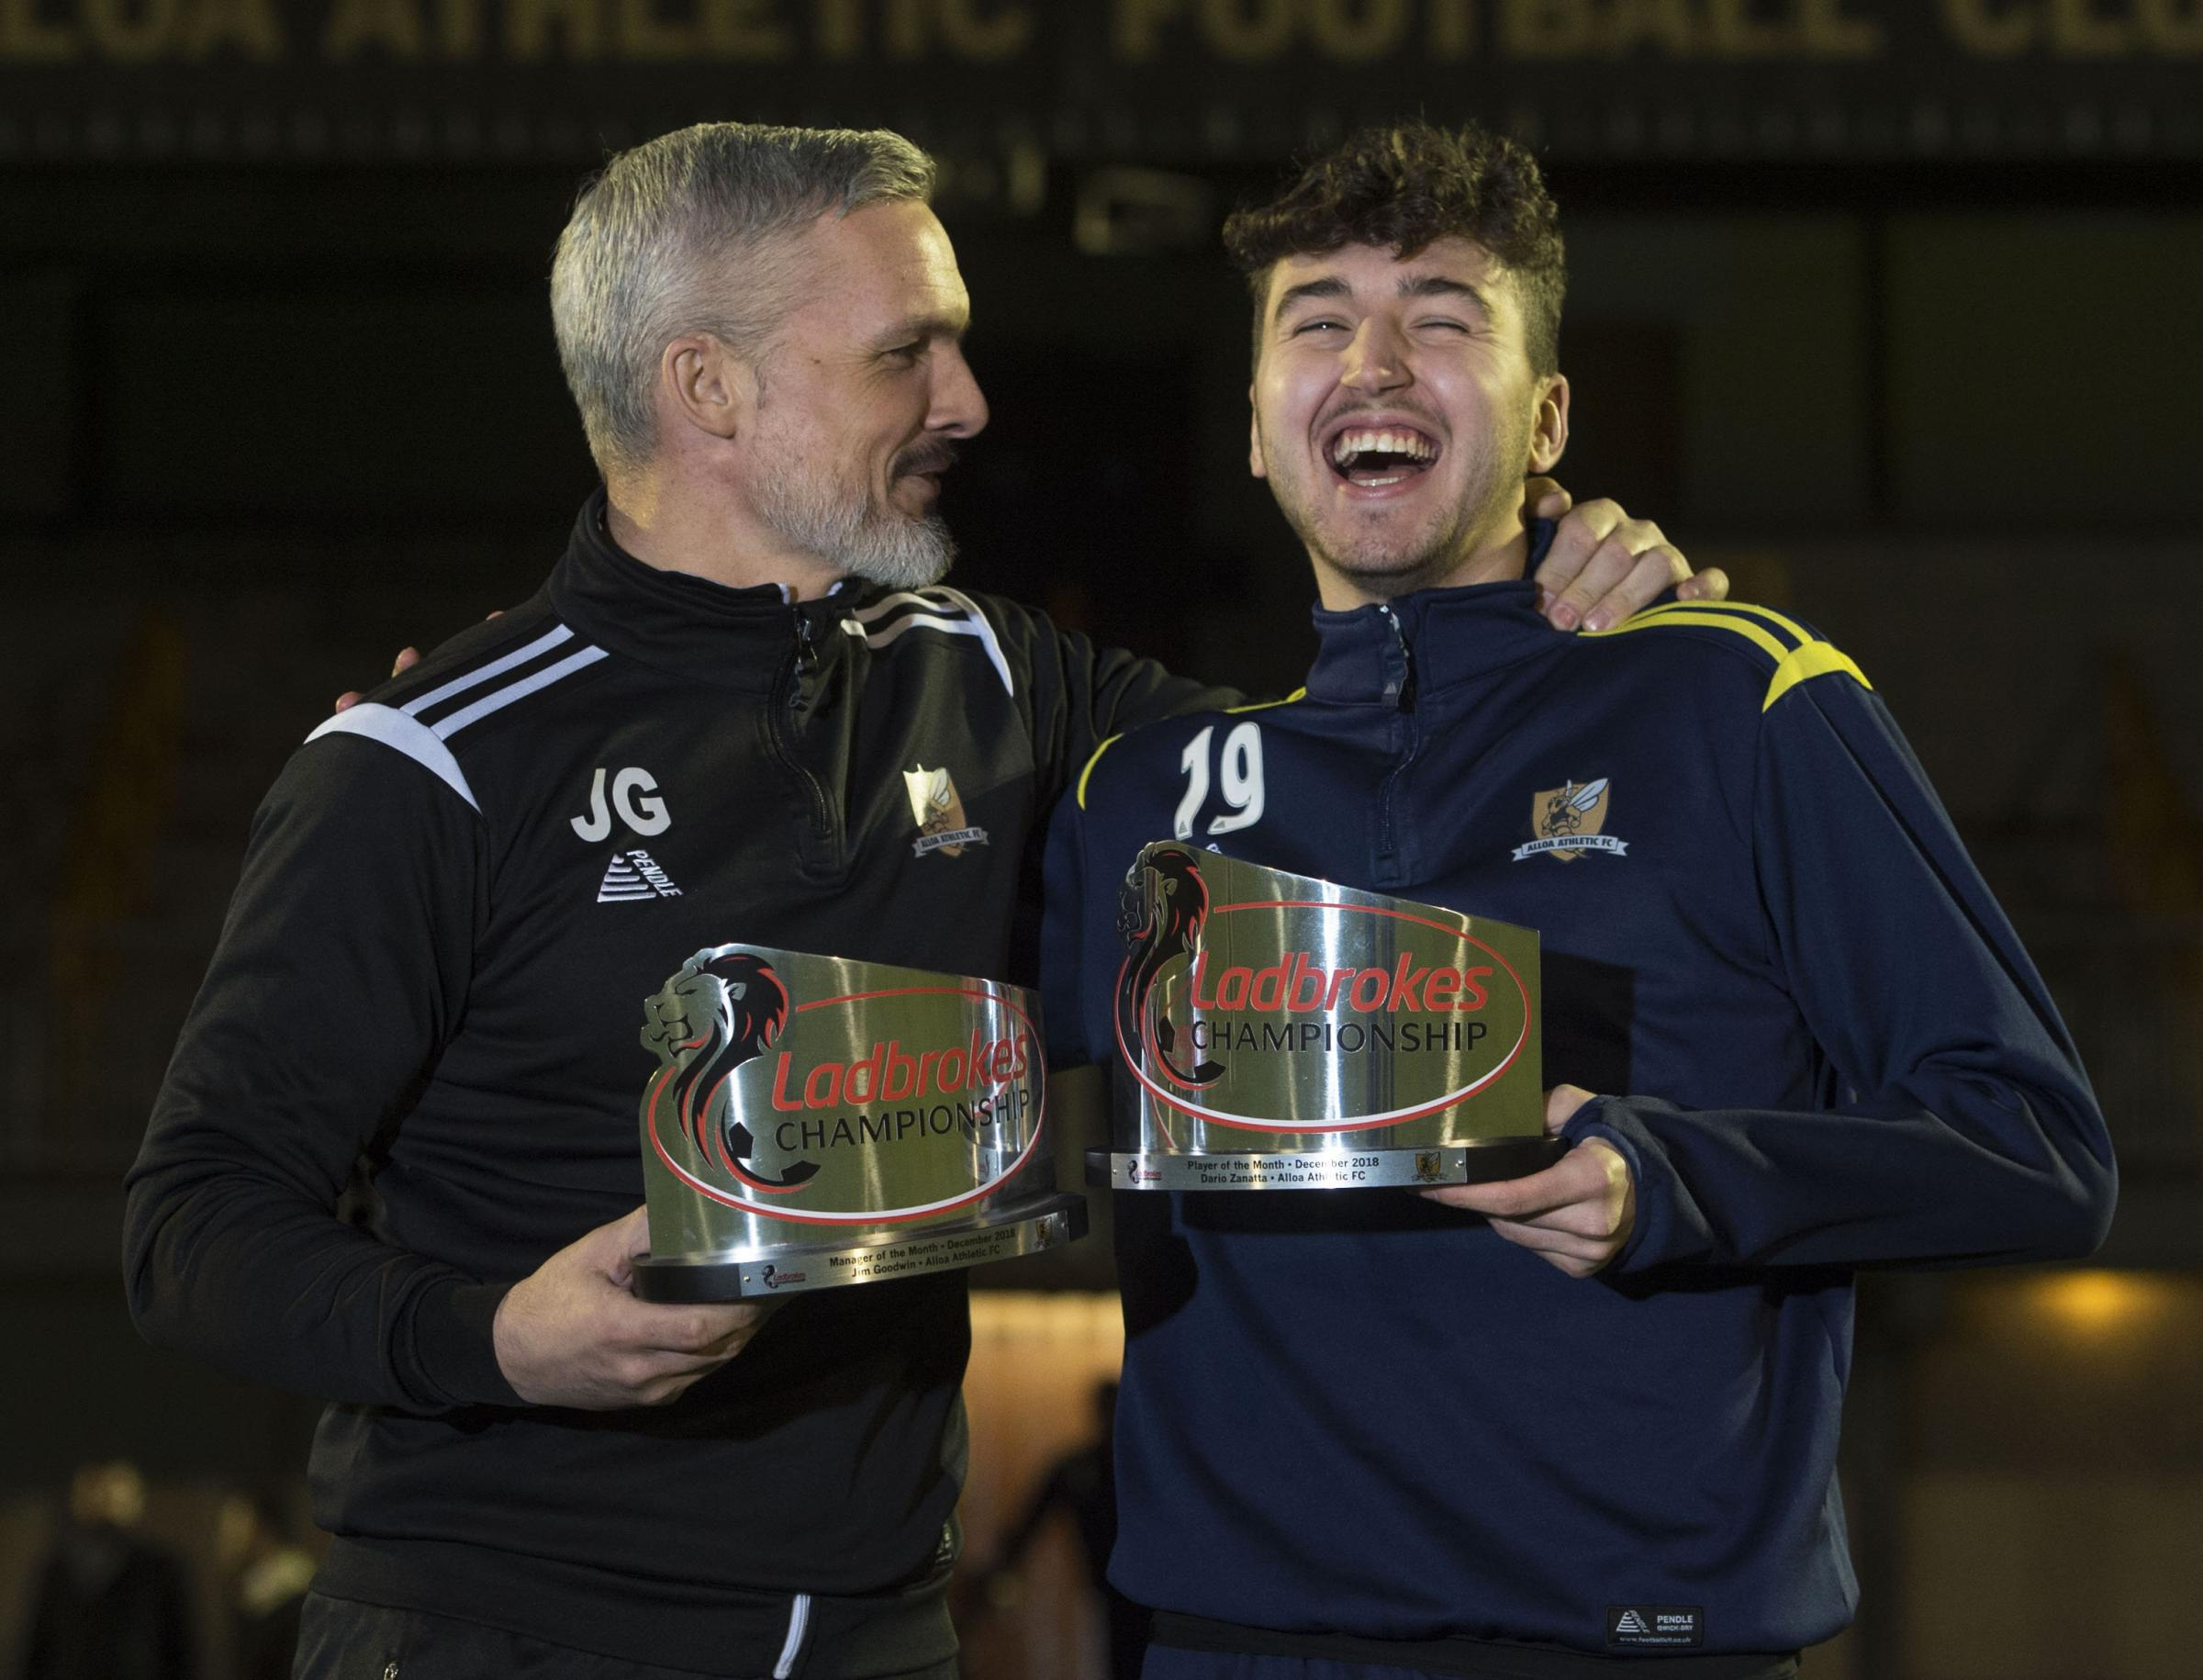 Alloa manager Jim Goodwin and forward Dario Zanatta received the Ladbrokes Championship Manager and Player of the Month awards for December